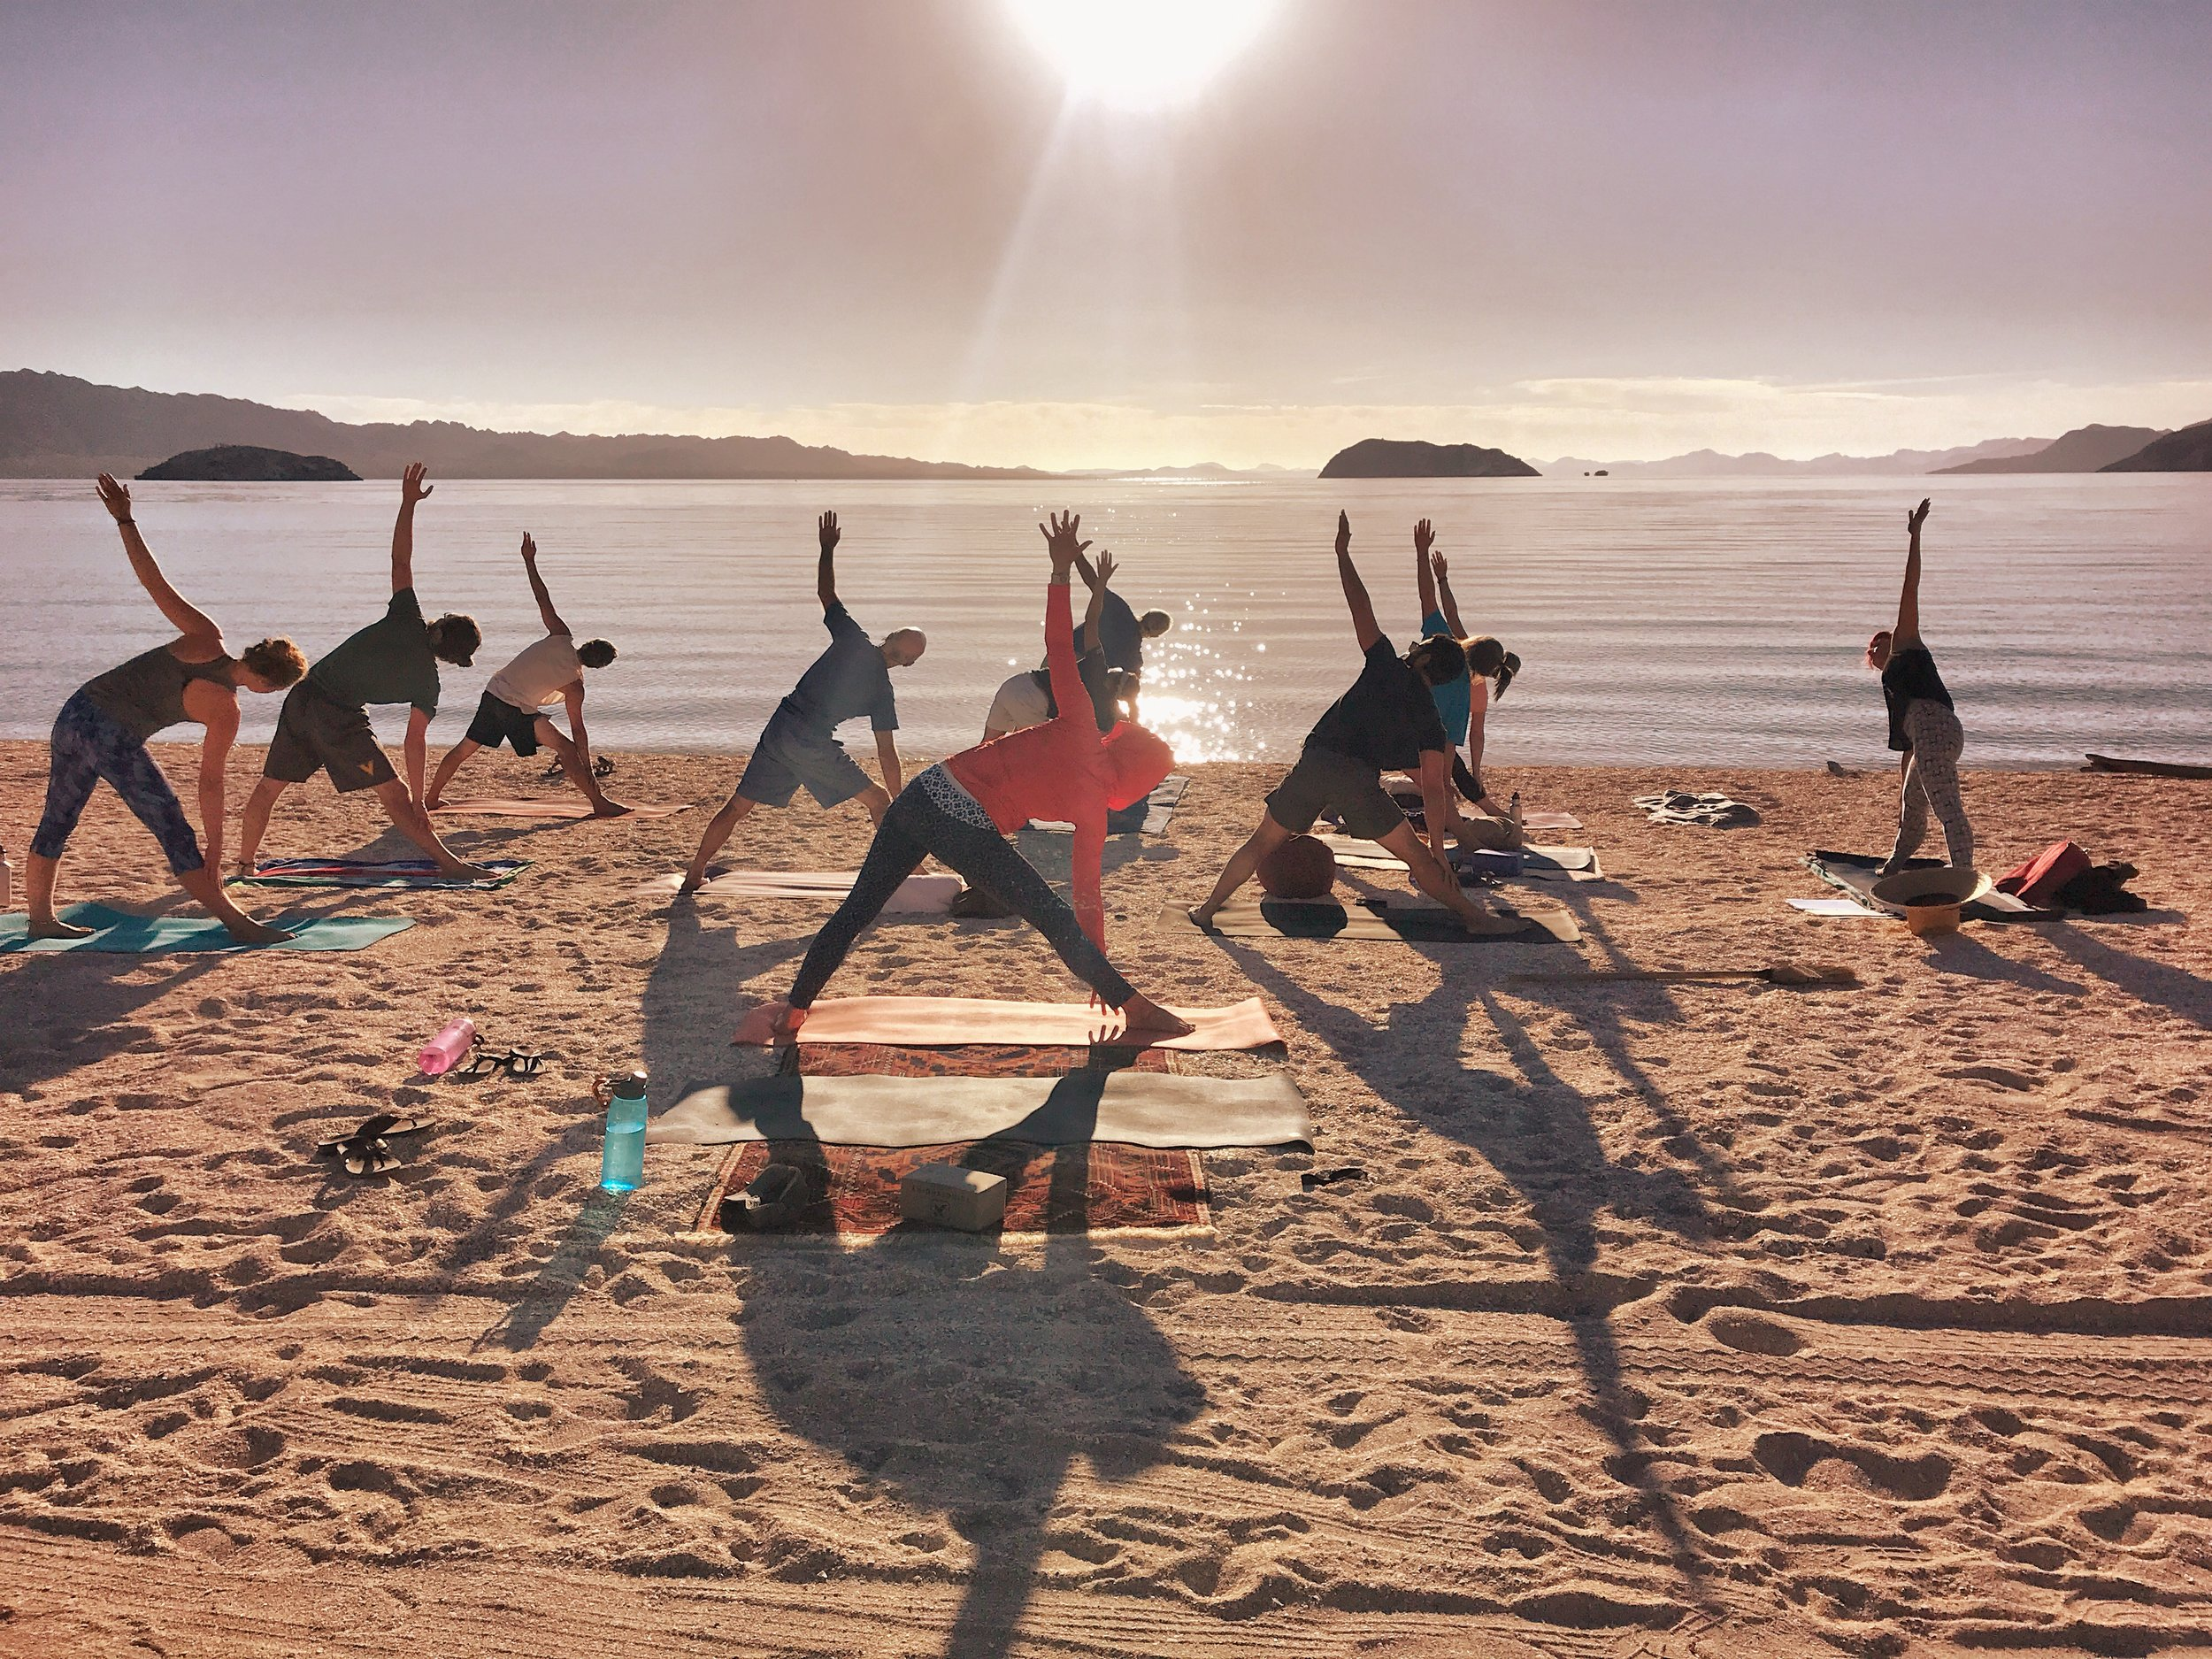 Impromptu yoga classes at Playa Escondida, Bahia Concepcion.